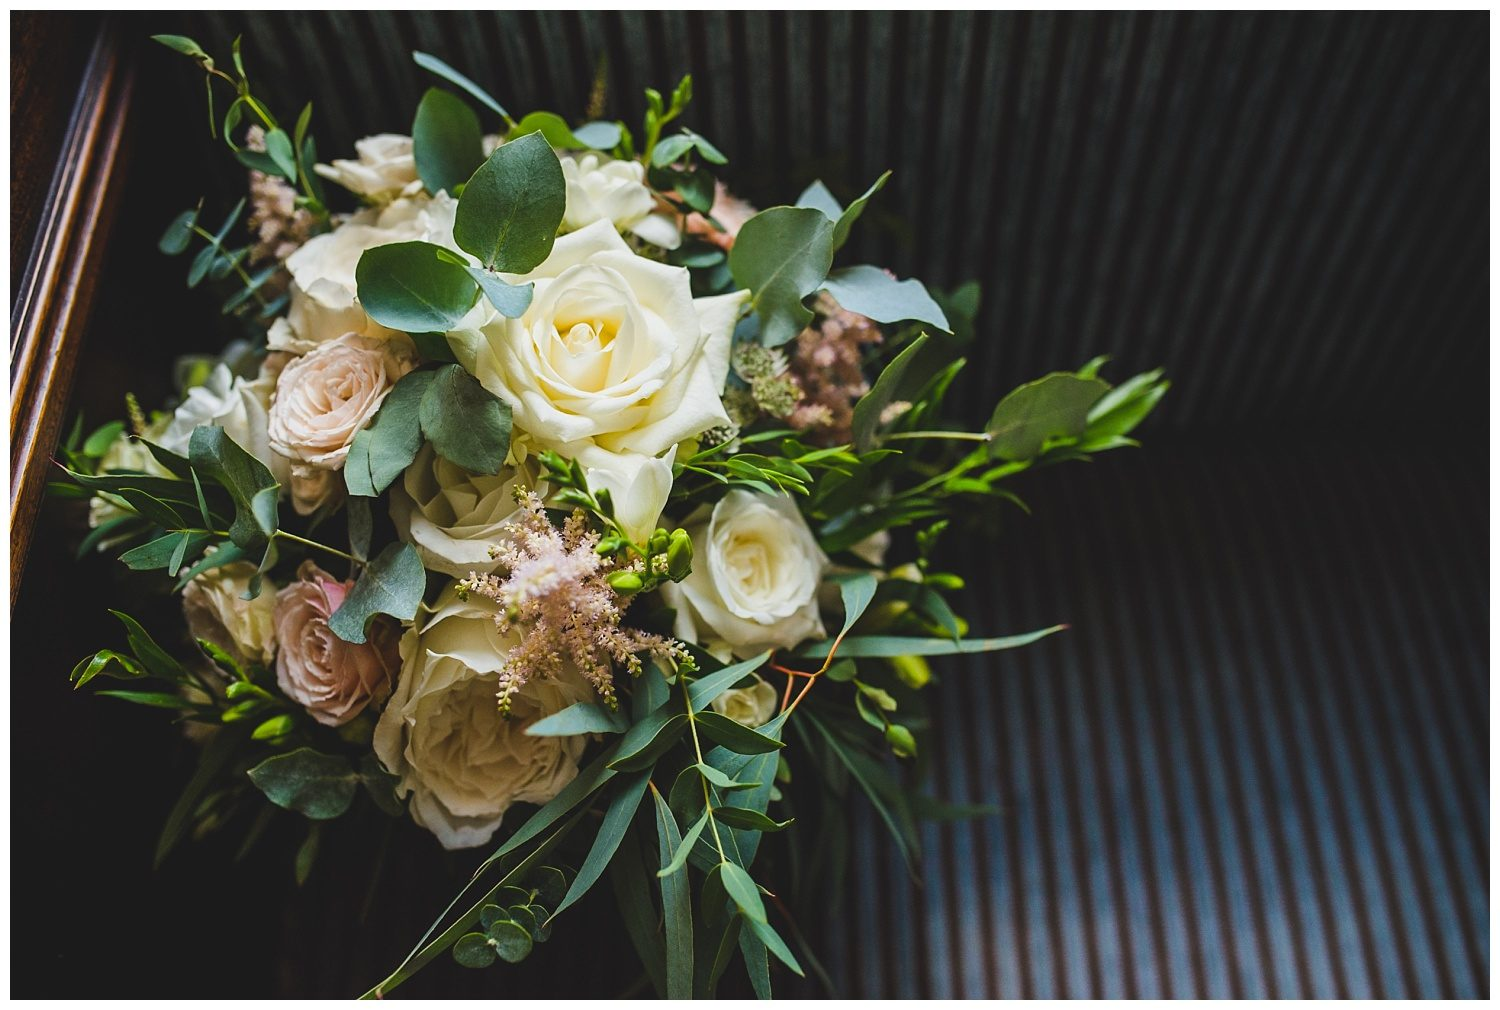 Wedding flowers at Peckforton Castle